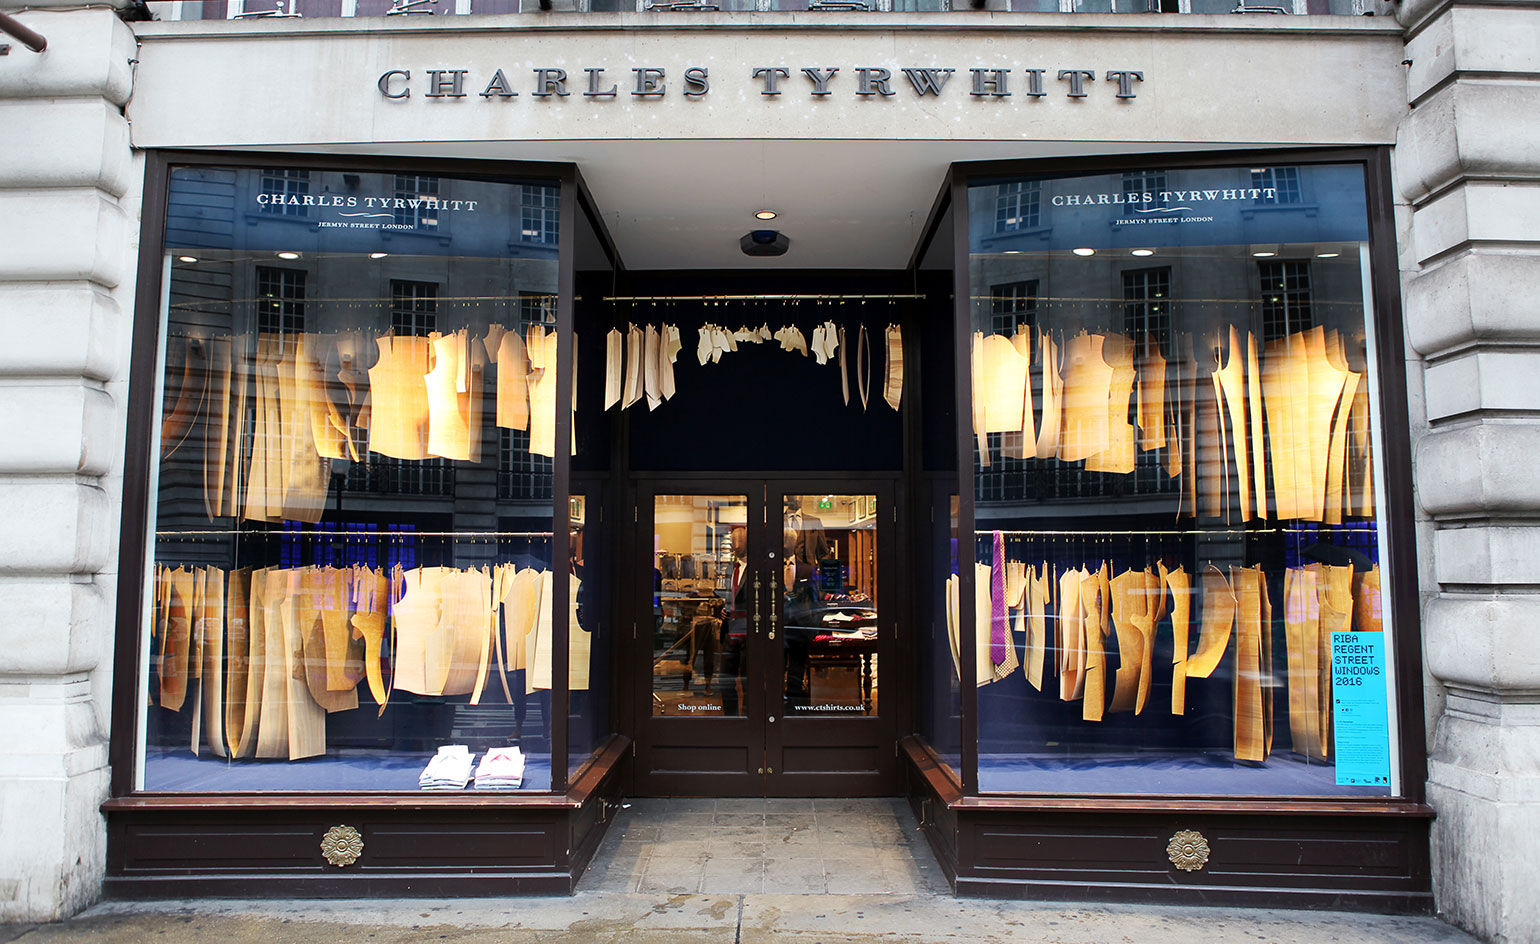 At Charles Tyrwhitt, there are shirt patterns manufactured from British timbers